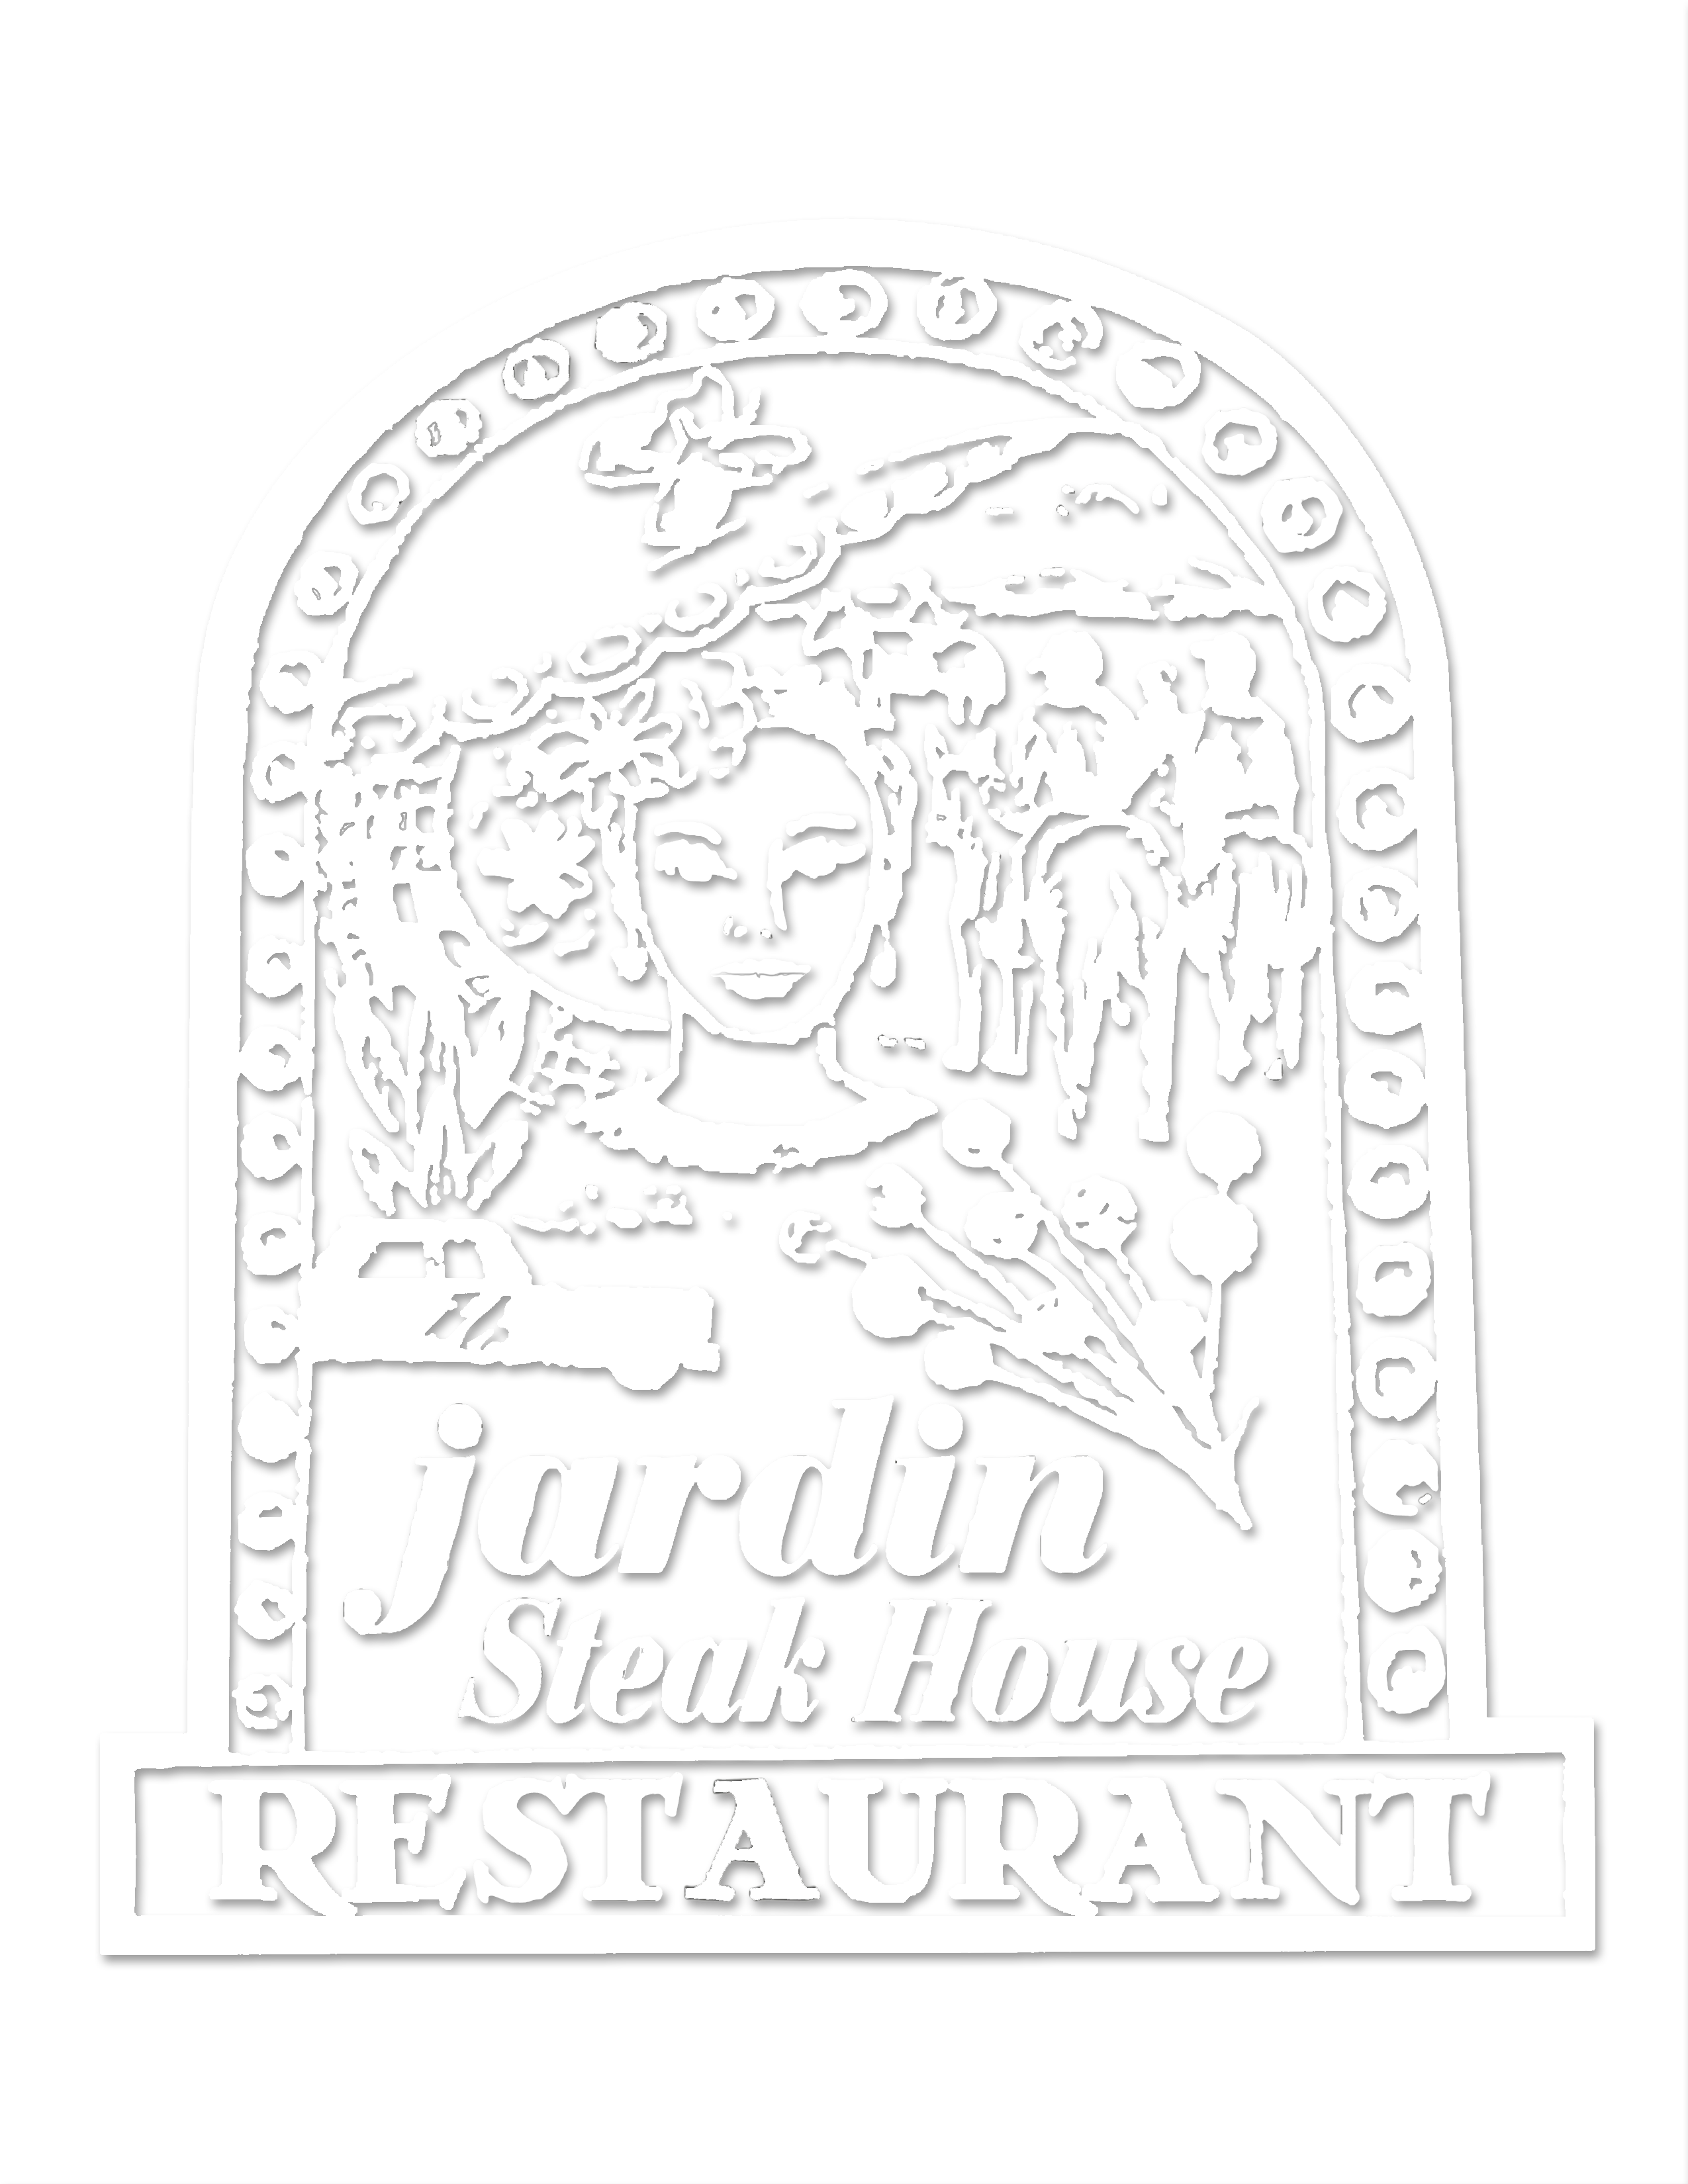 Jardín Steak House